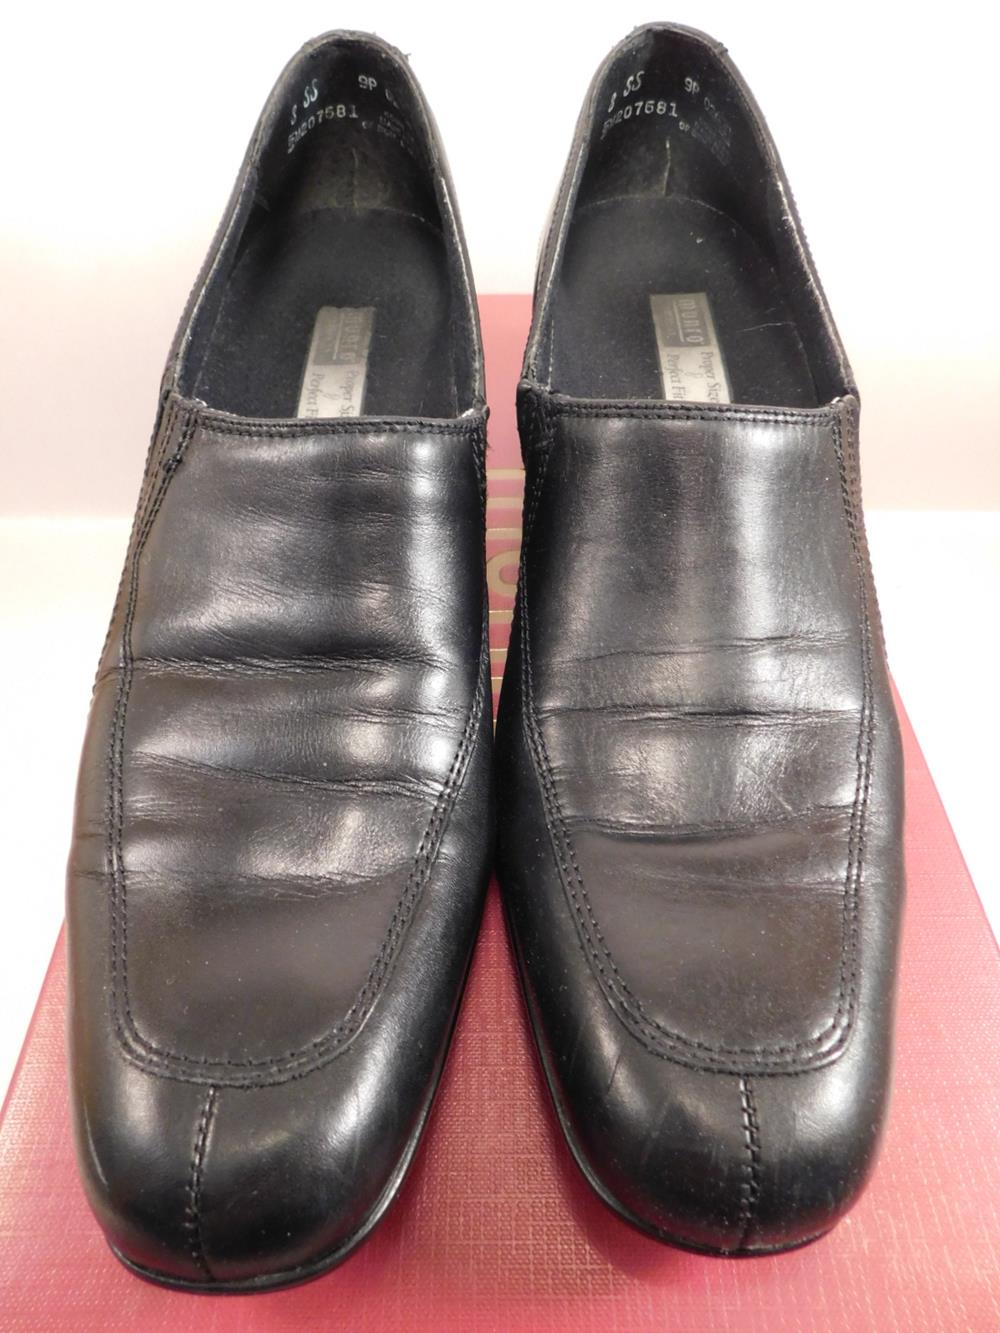 BELAIR BLACK LEATHER SIZE 8SS WOMENS SHOES